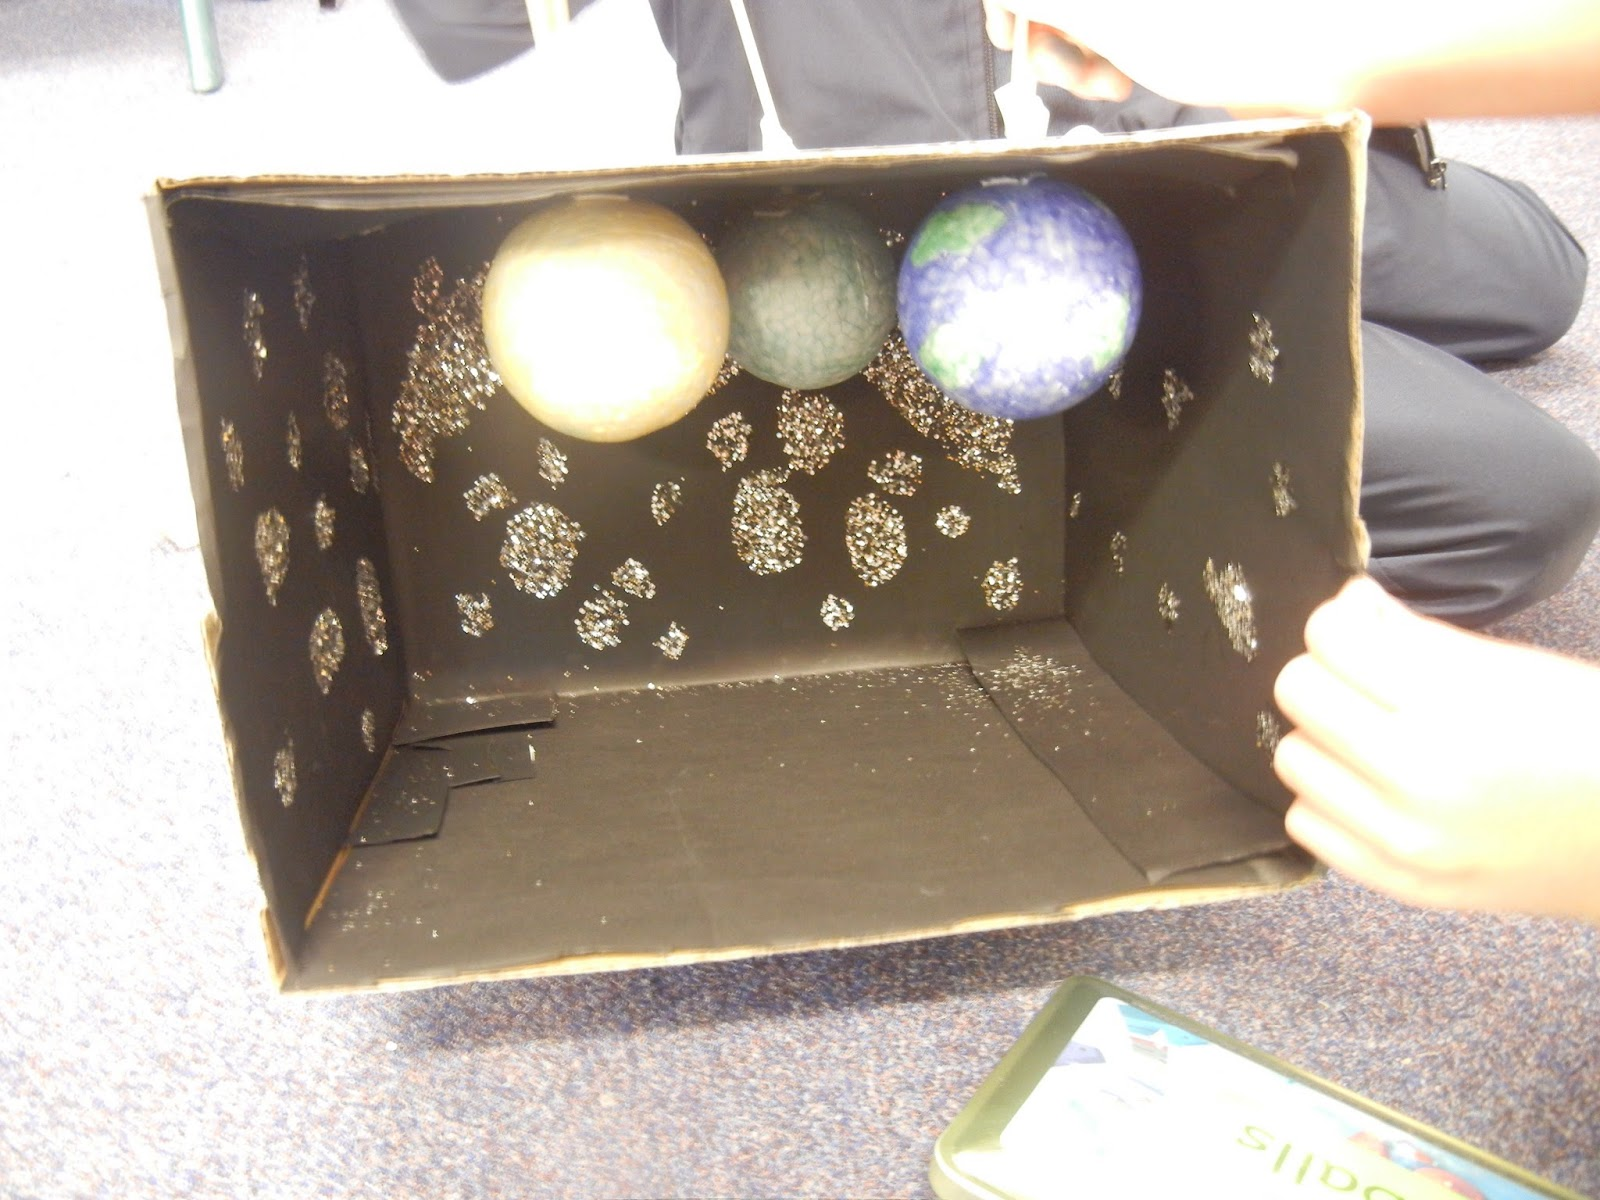 Year 5 / Grade 5 Class Activities and News: Science